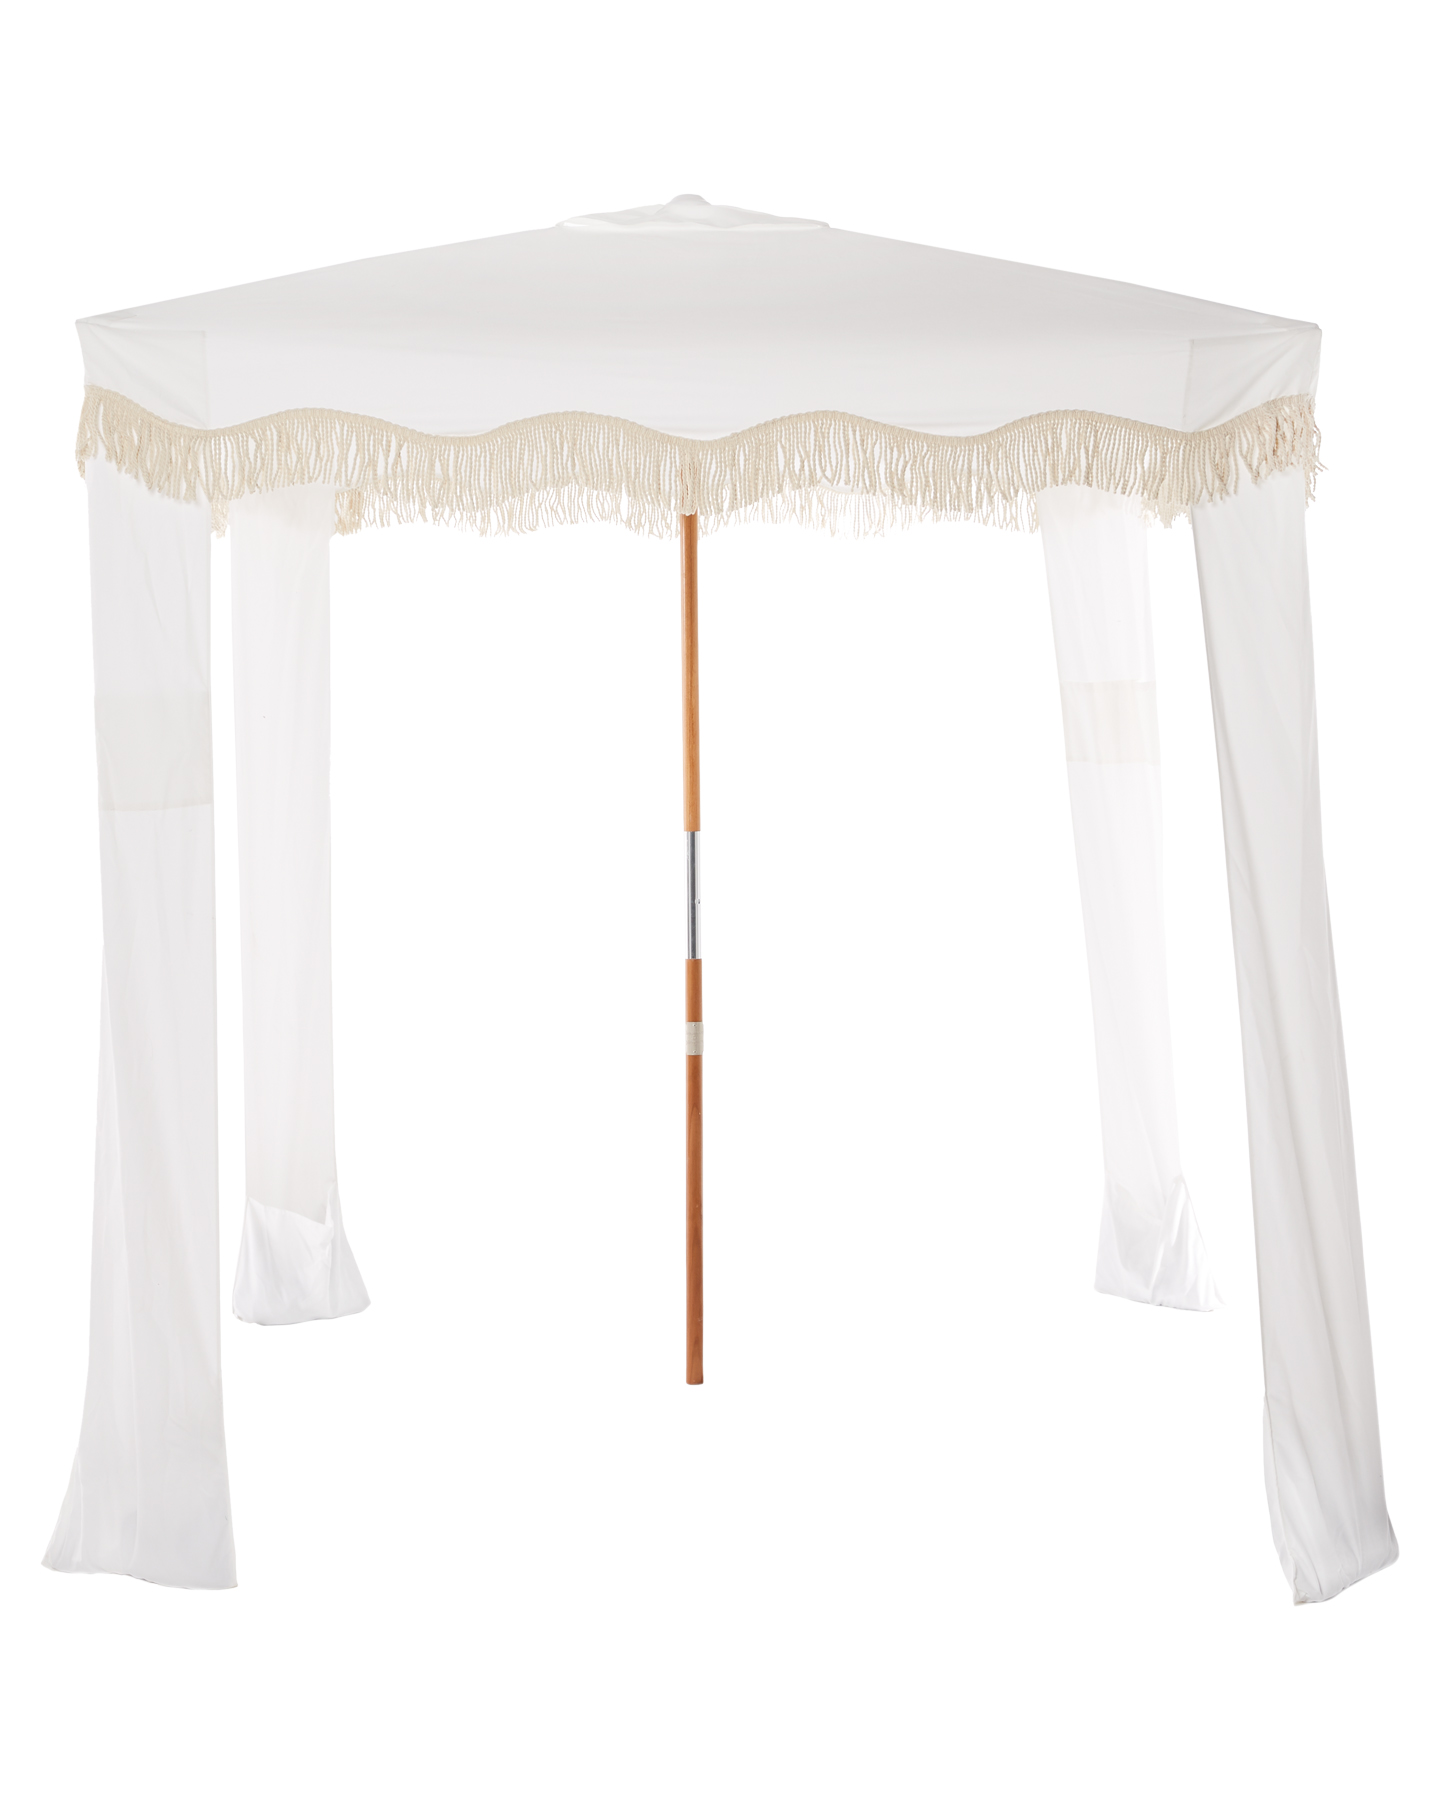 Business And Pleasure Co Premium Beach Cabana Antique White